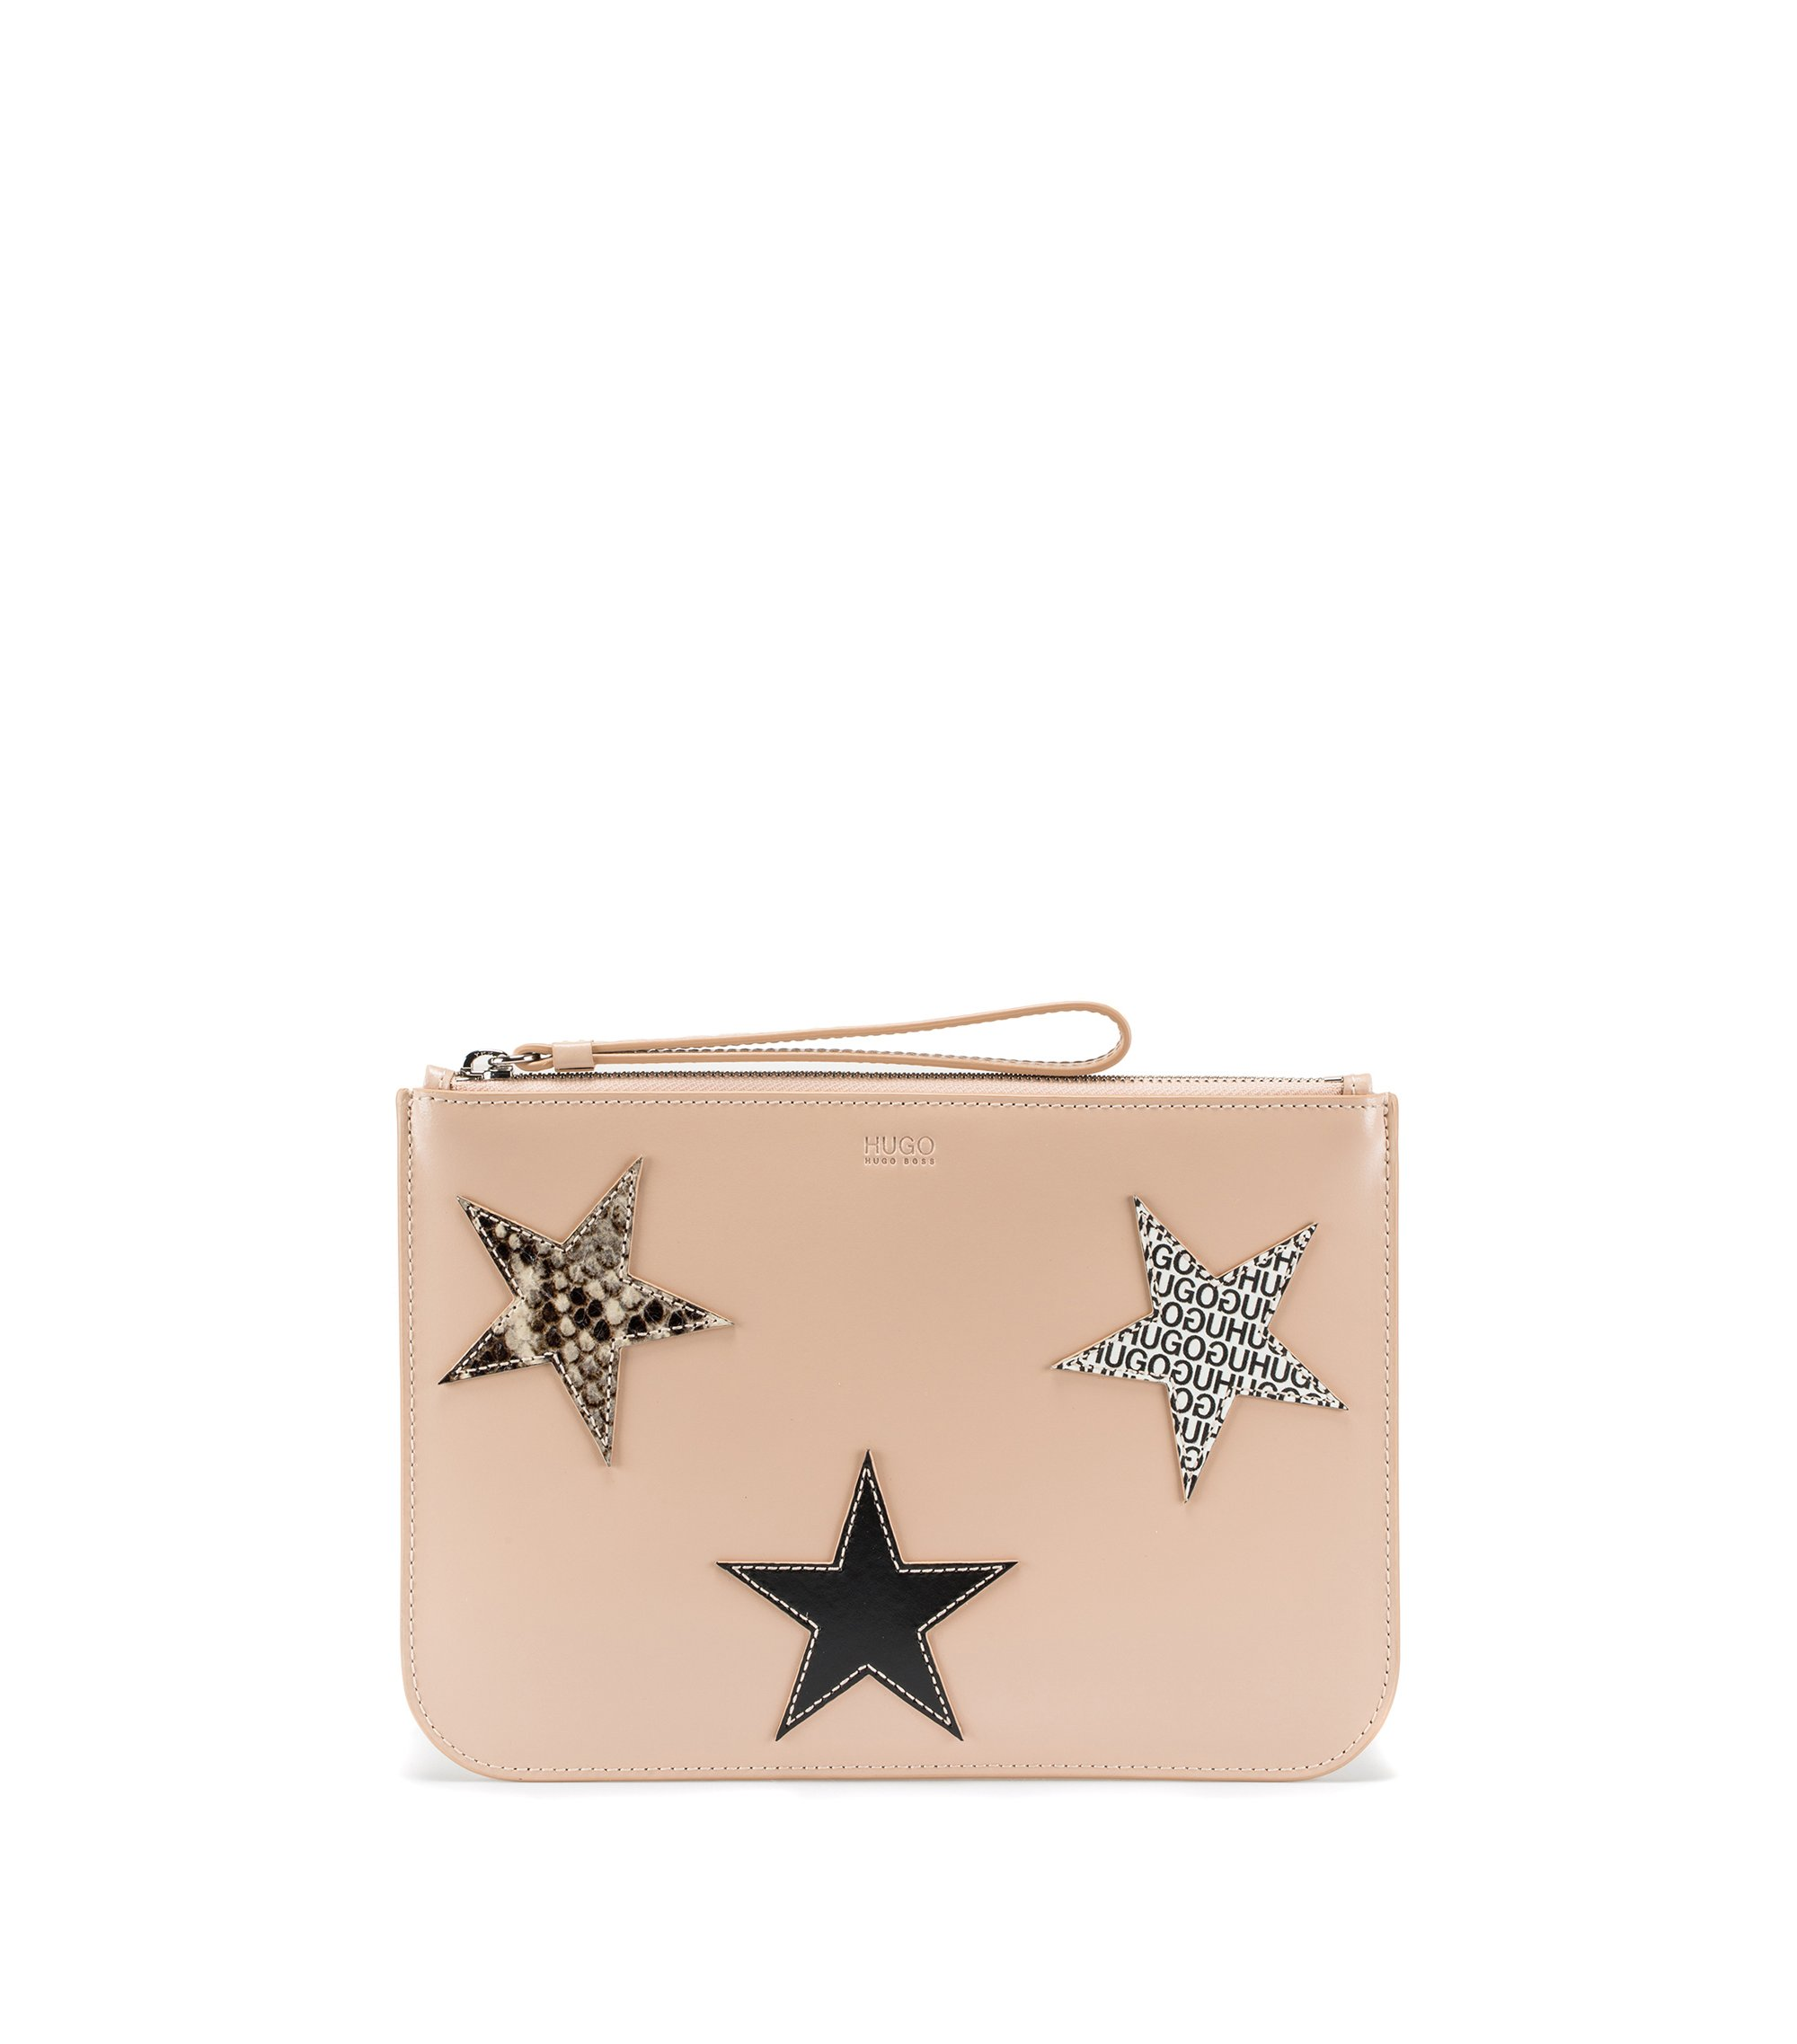 Leather clutch bag with calf-leather star appliqués, Hellbeige